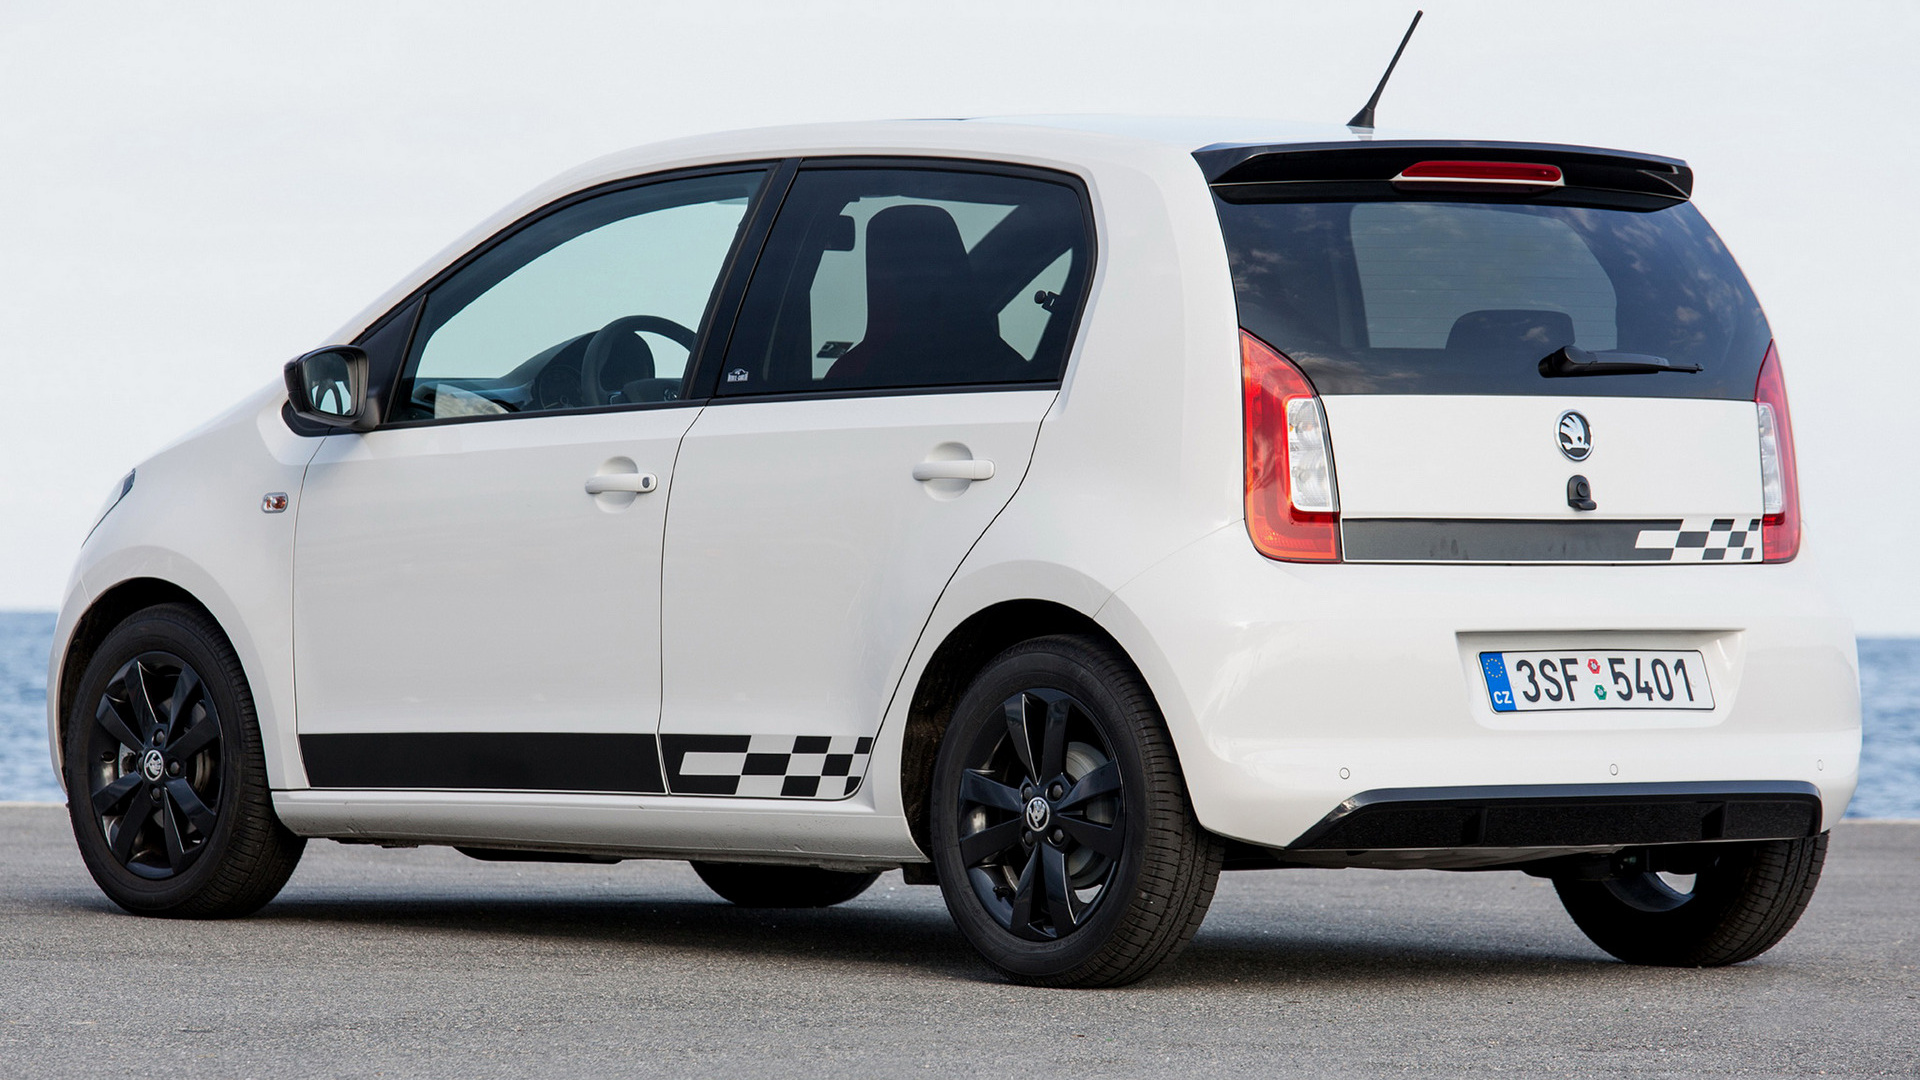 2014 skoda citigo monte carlo 5 door wallpapers and hd images car pixel. Black Bedroom Furniture Sets. Home Design Ideas